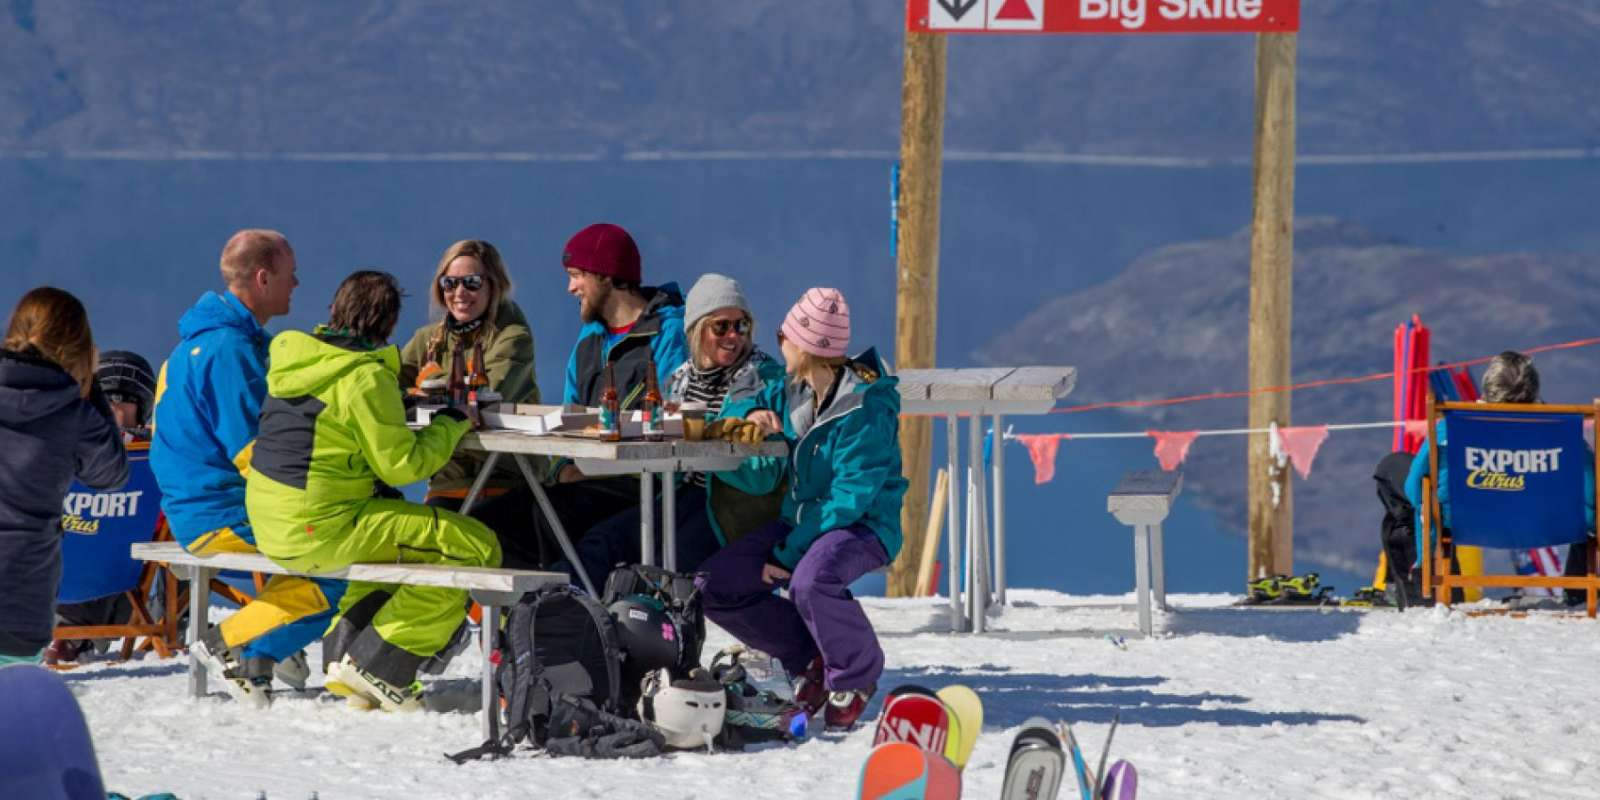 Friends having drinks and food at Treble Cone Ski Area